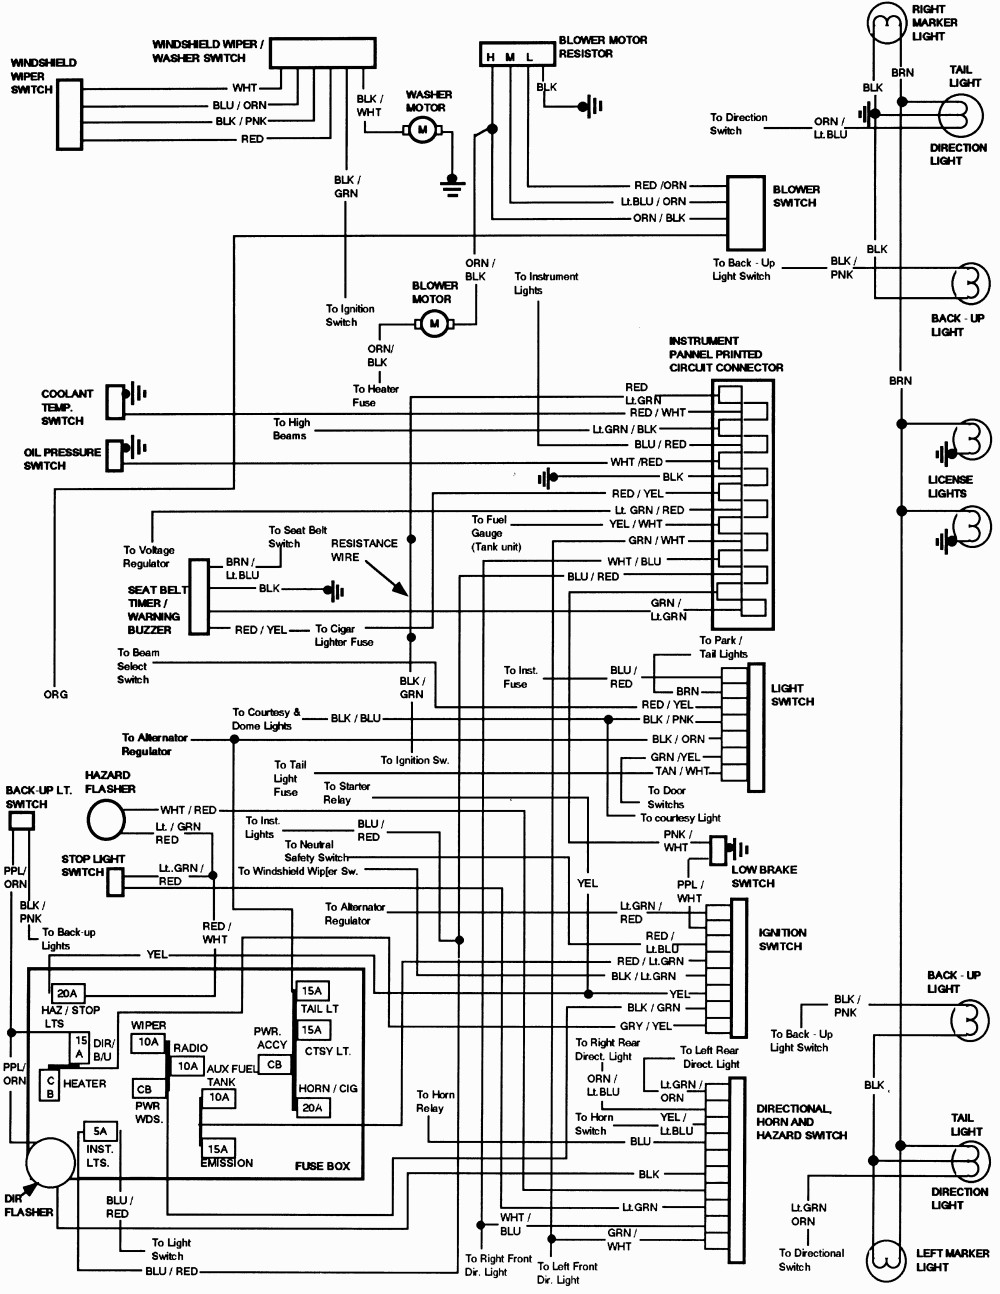 hight resolution of wiring diagram for 1988 f 250 wiring diagram blog 1988 ford f150 wiring diagram 1988 f250 wiring diagram